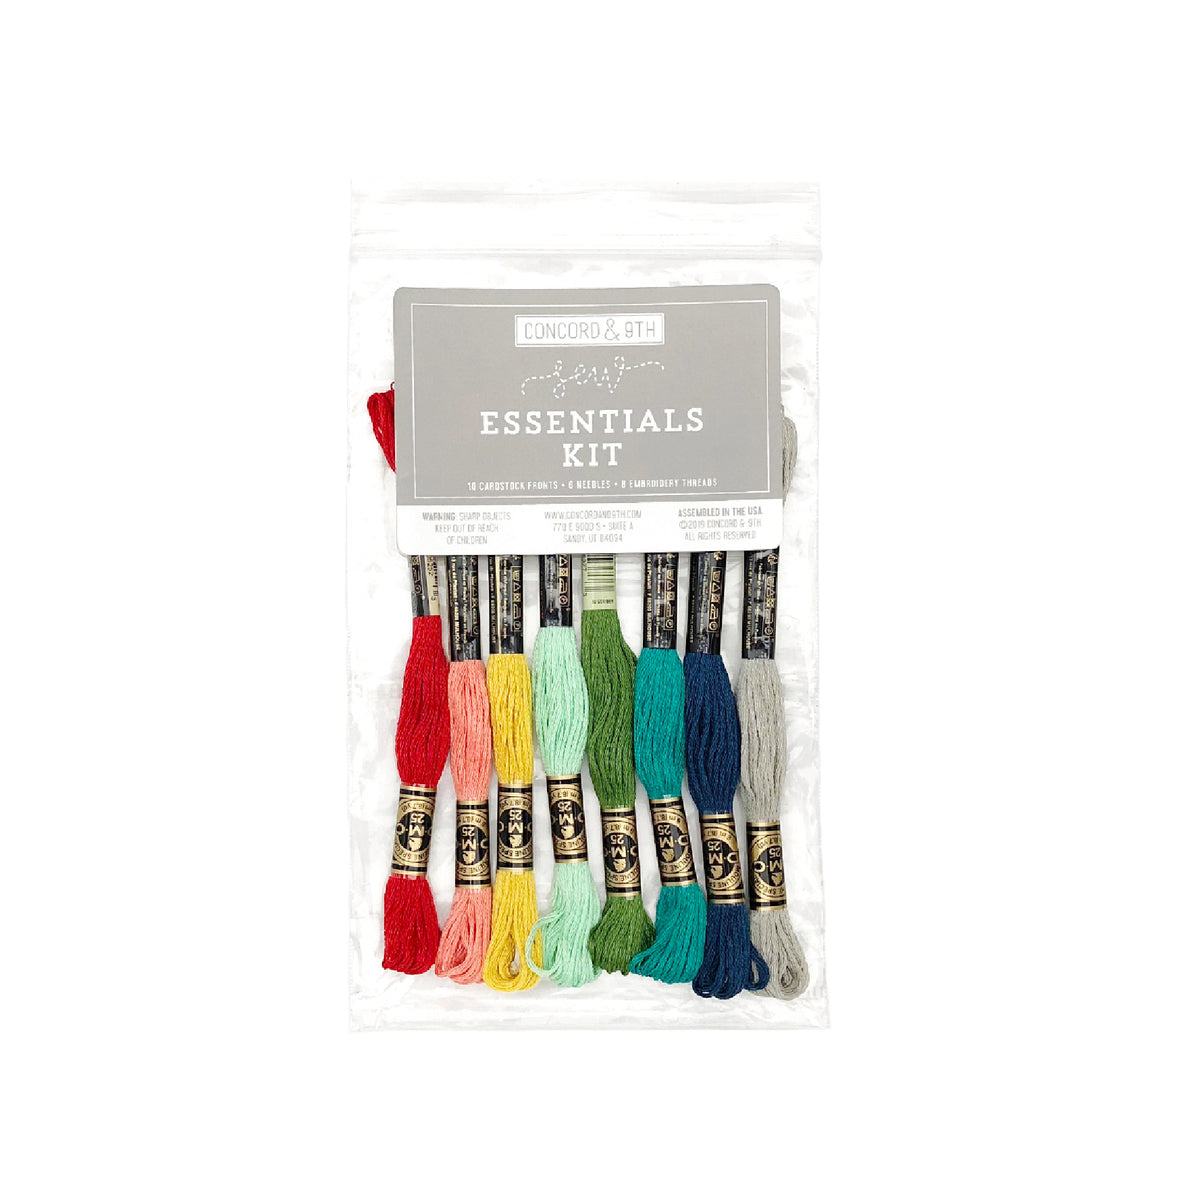 Sew Essentials Kit